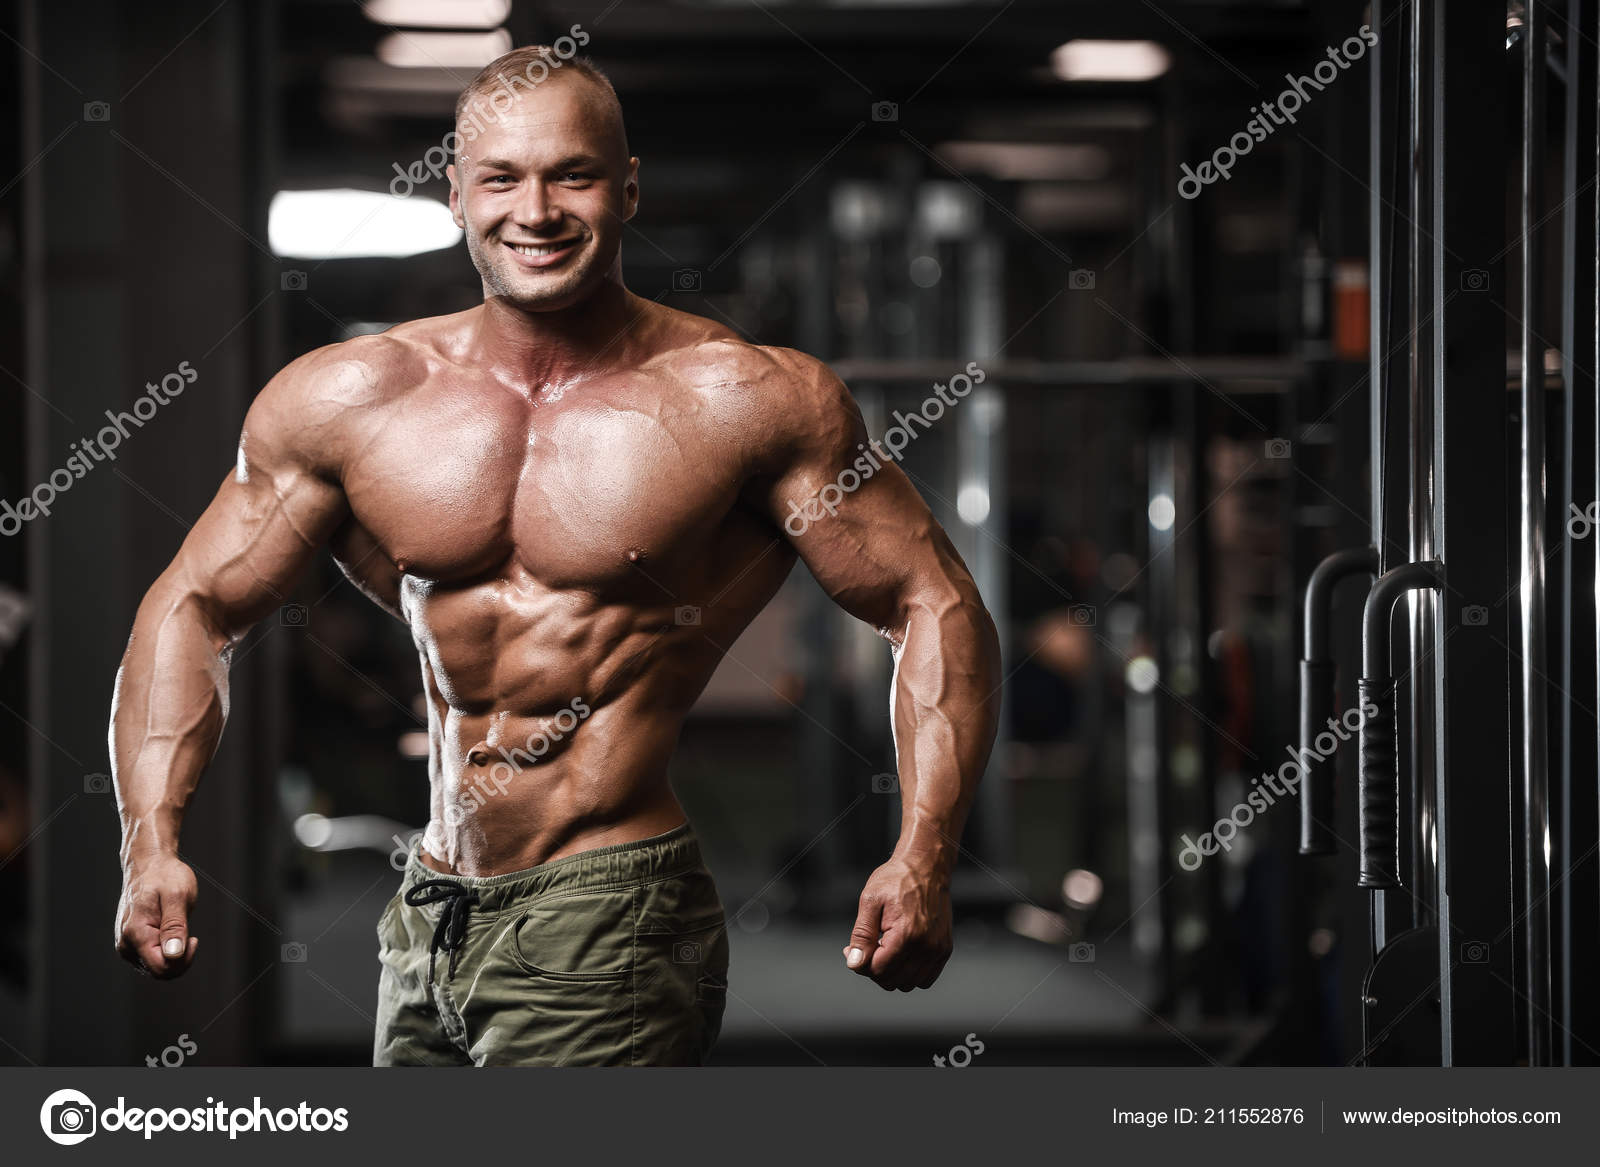 Handsome Strong Bodybuilder Athletic Man Pumping Muscles